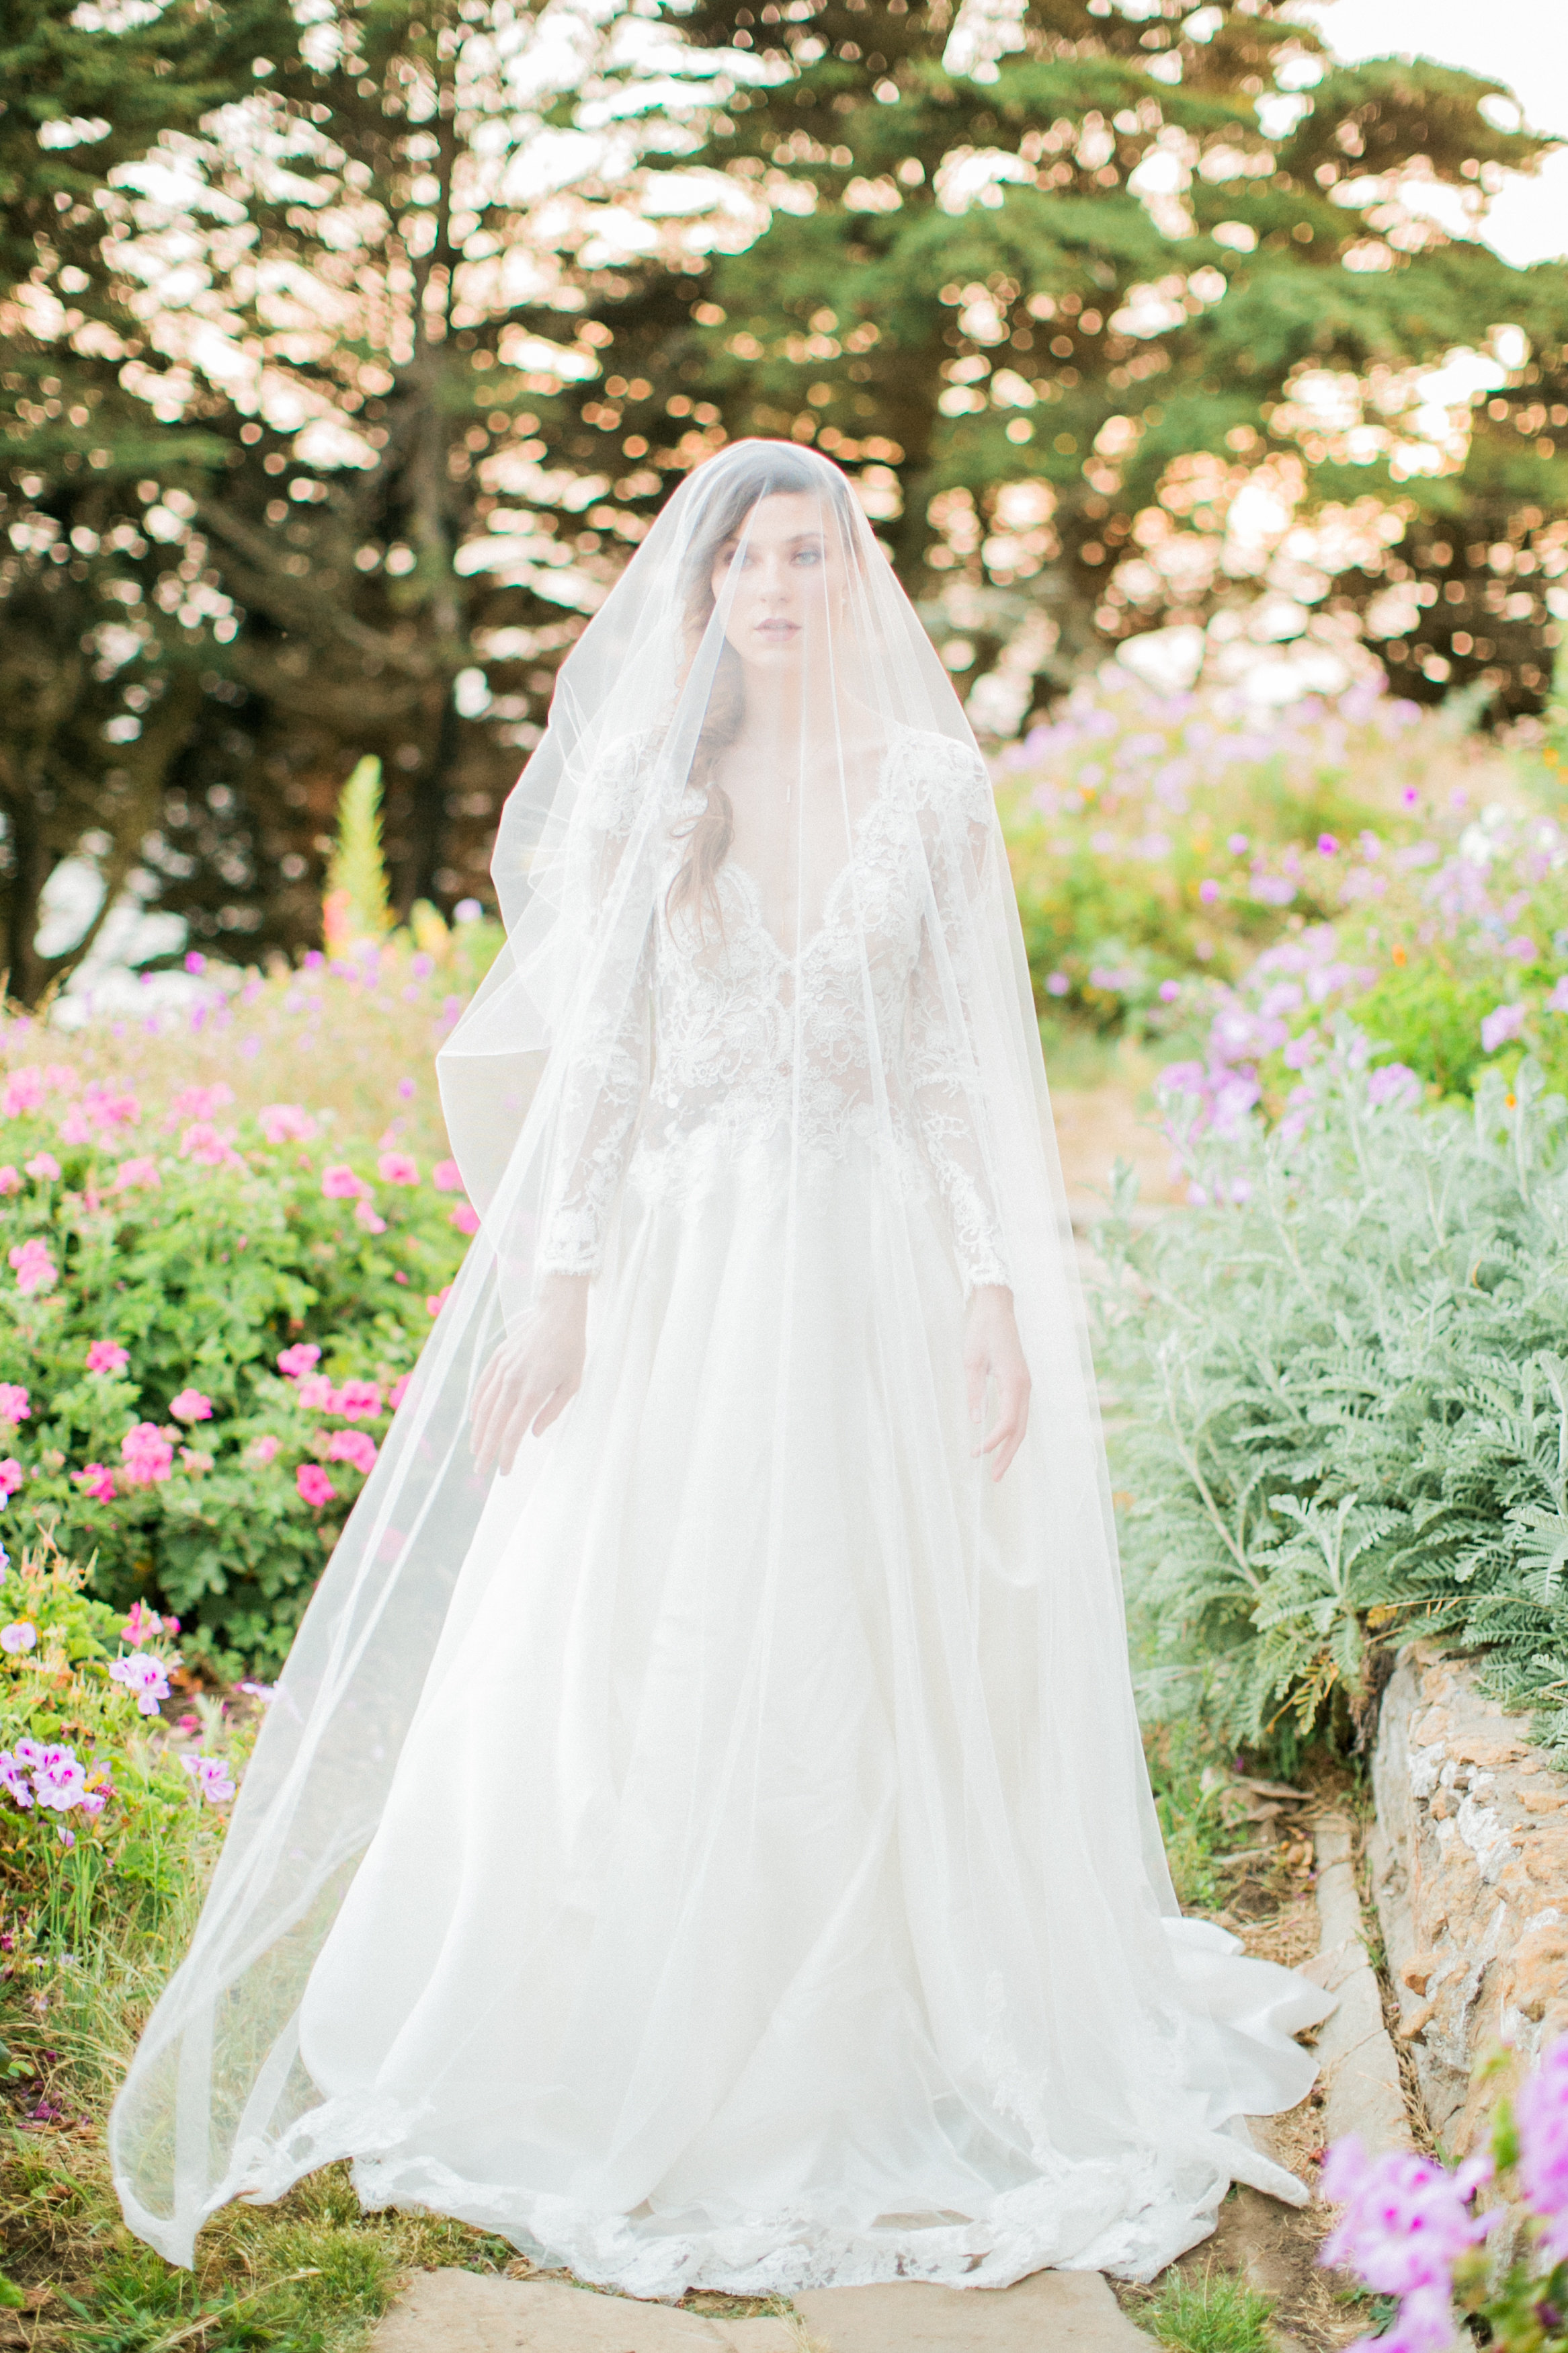 Illusion Lace Top, Long Sleeve, A line Gown